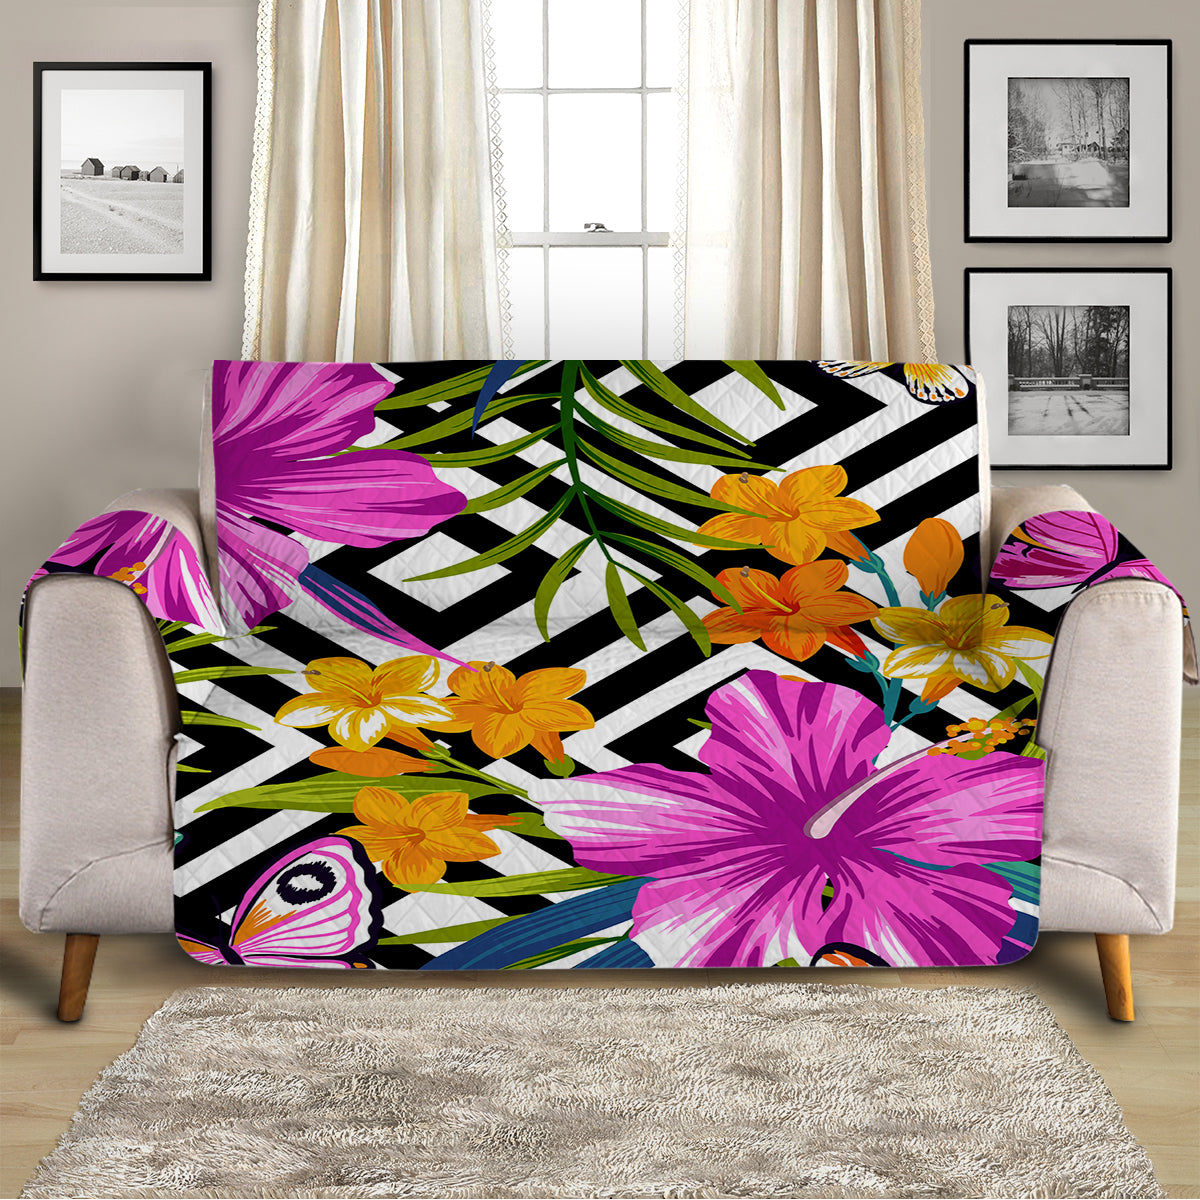 The Flower Garden Sofa Cover